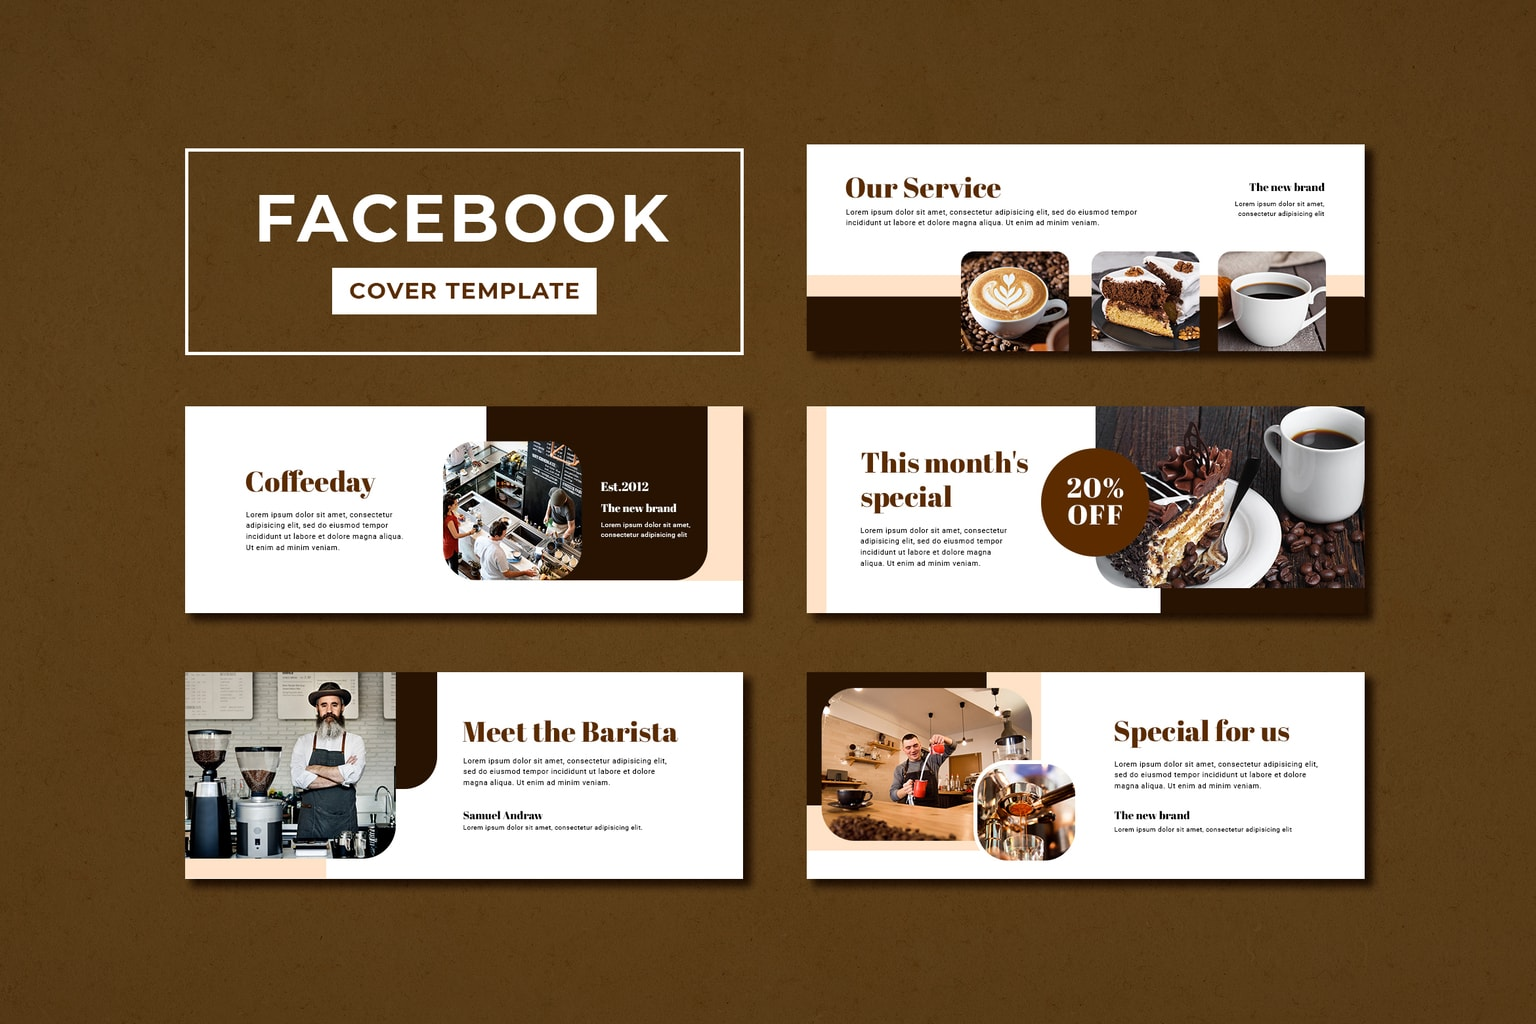 facebook cover daily special coffee